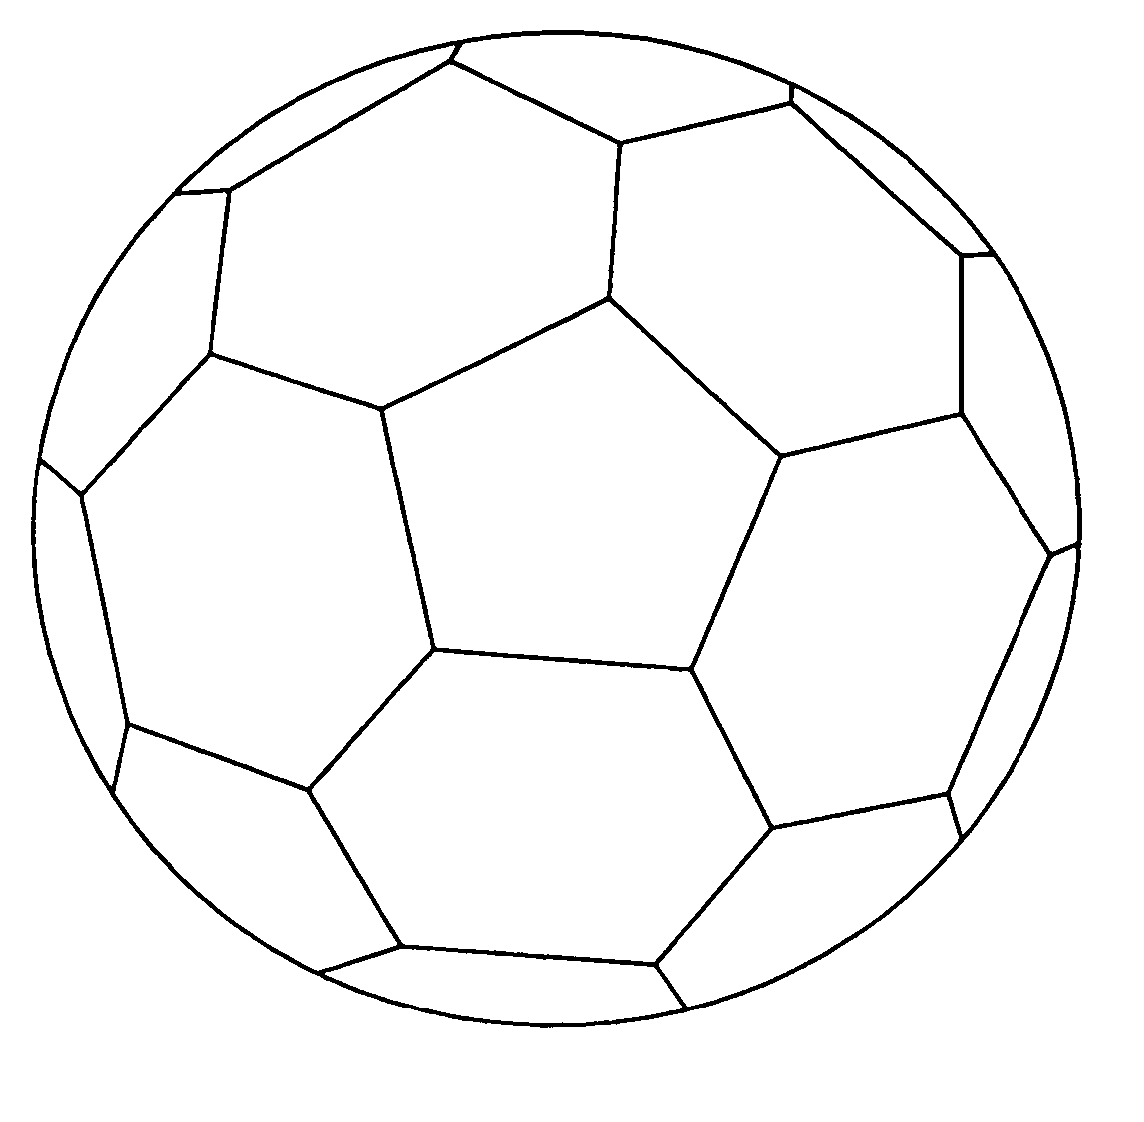 Free Printable Soccer Ball Coloring Page Cool - Coloring pages